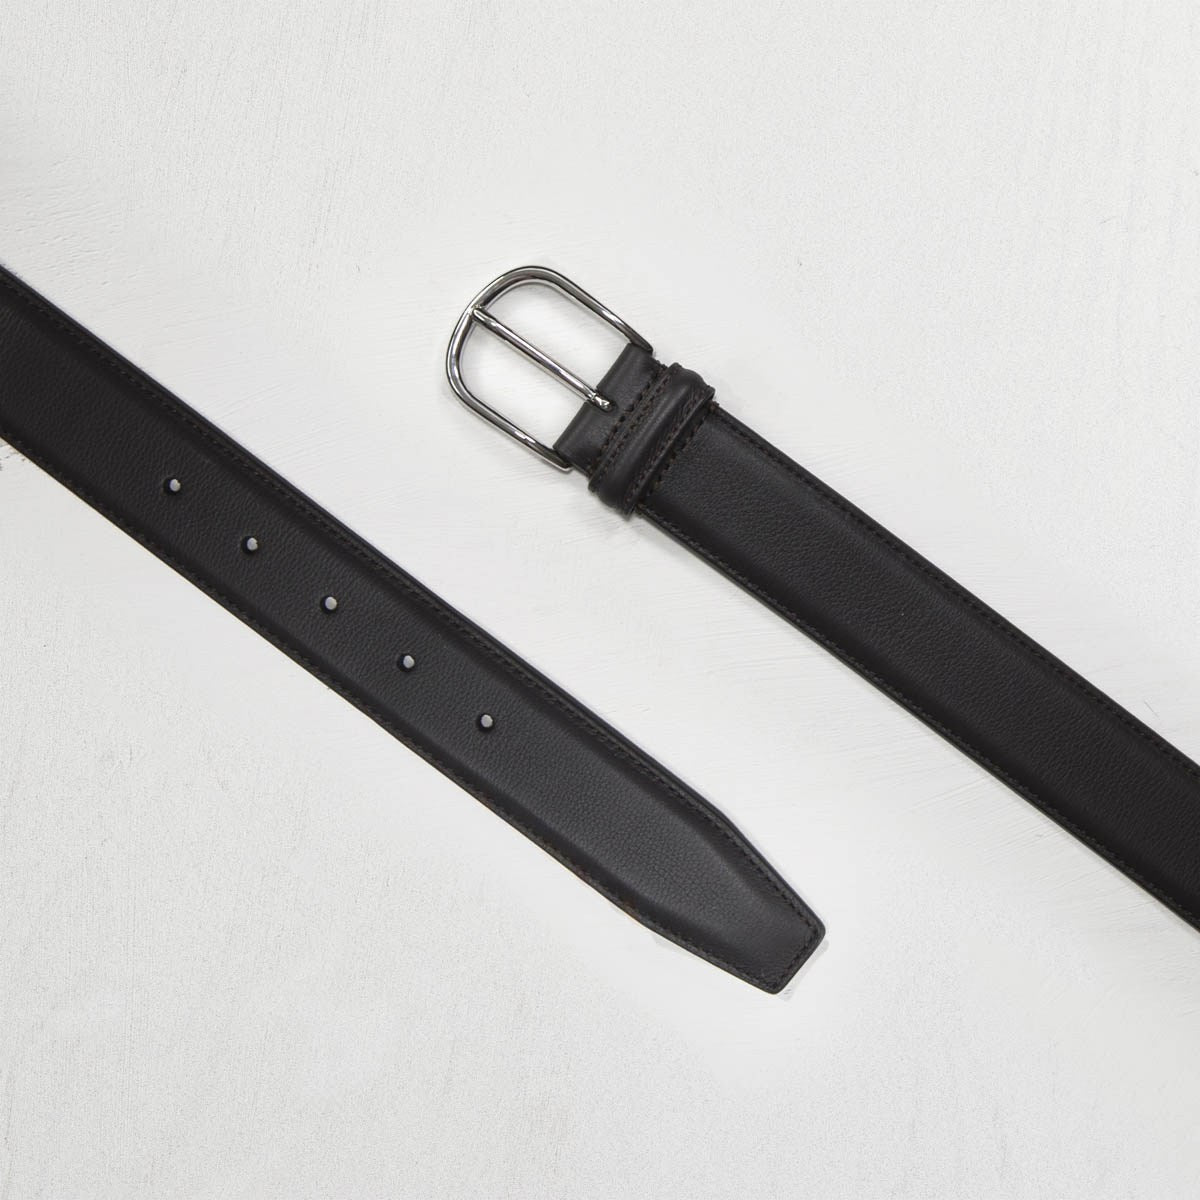 Dark Brown Leather Belt - Mr. Derk Apparel Ltd.